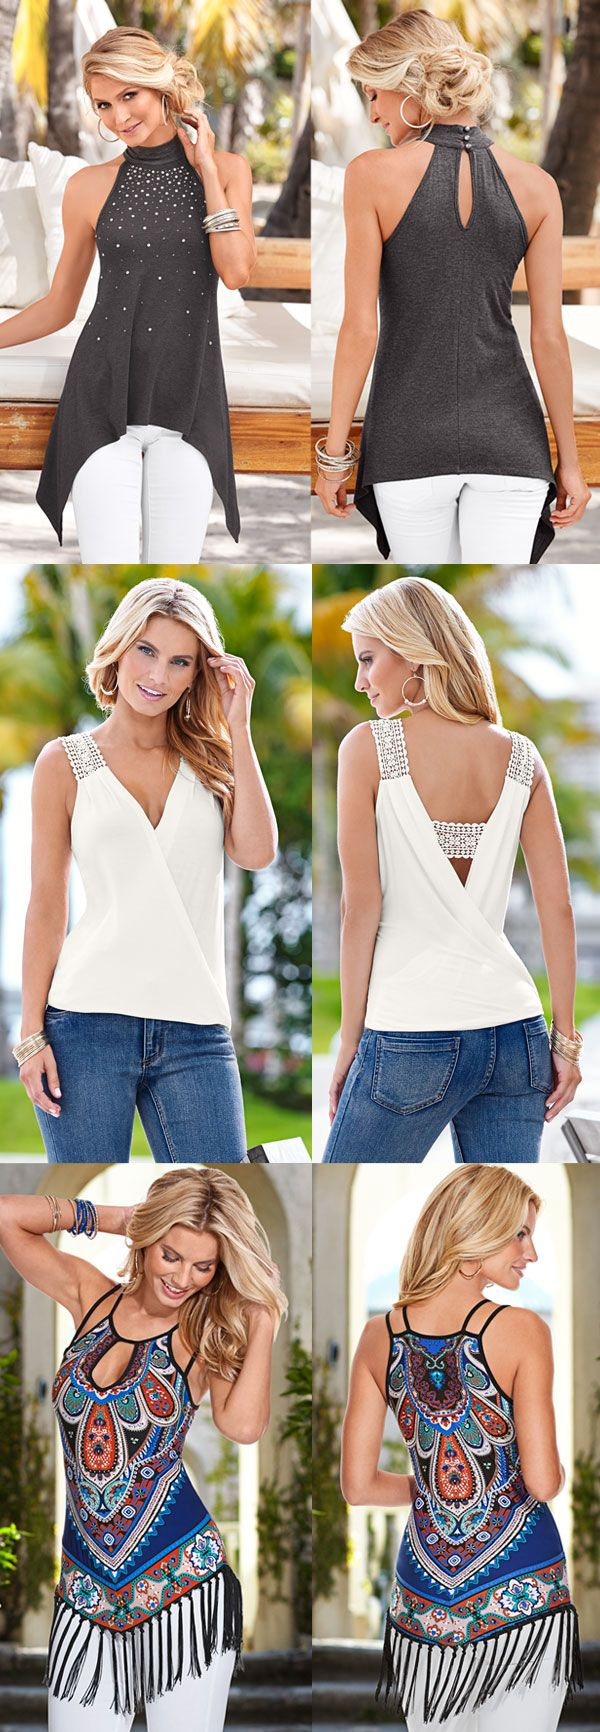 Have a casual day ahead or a fun night on the town? These tops are perfect for anywhere you go!